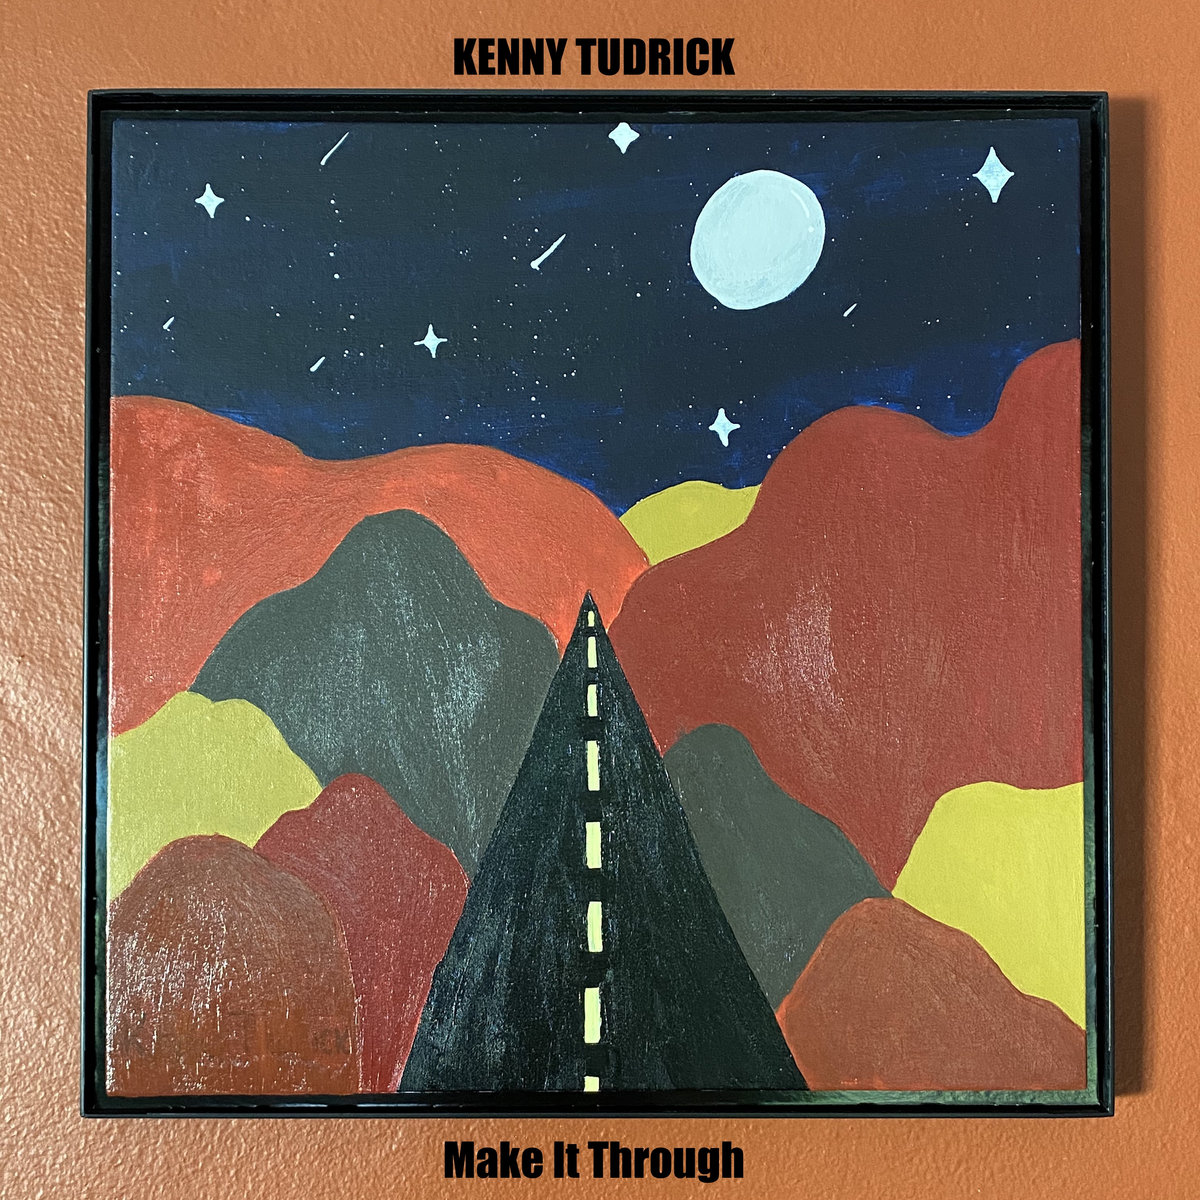 Make It Through by Kenny Tudrick